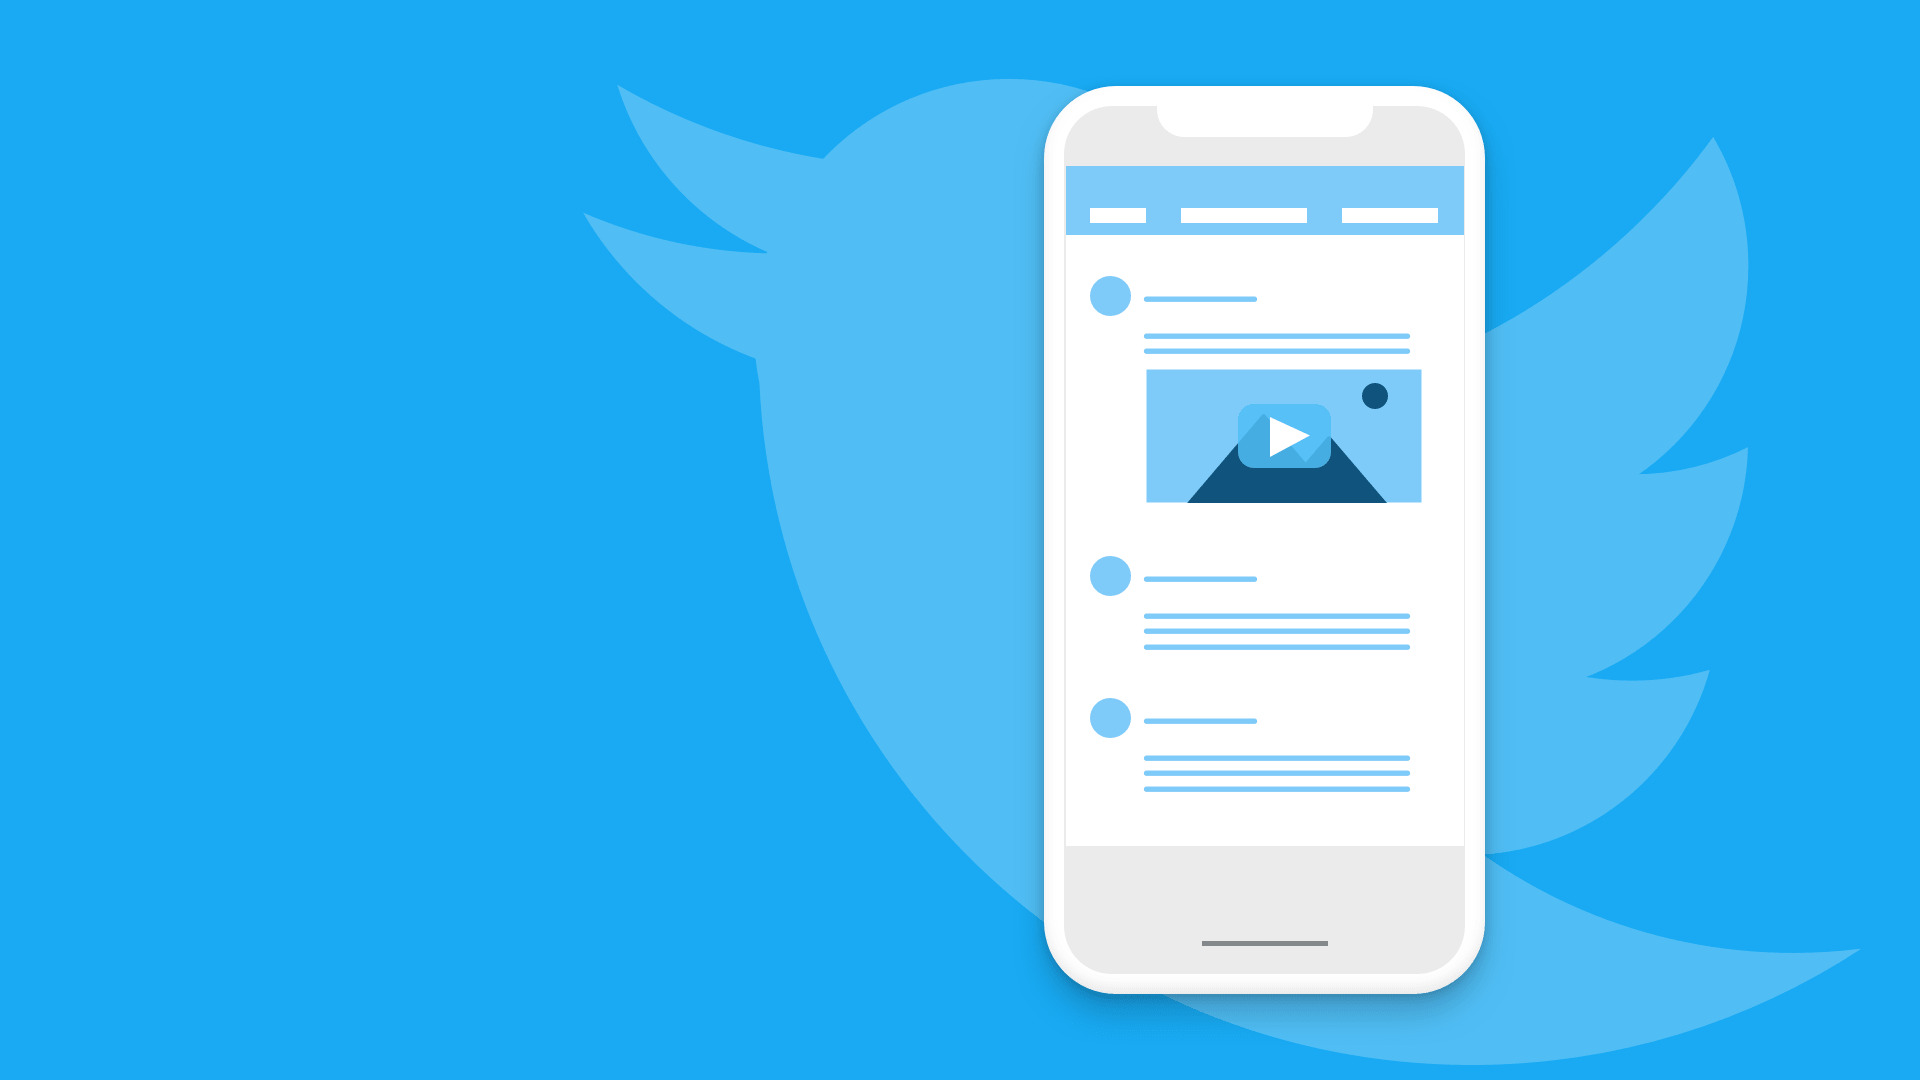 How to Post Videos on Twitter in 2019 [Quick Start Guide]